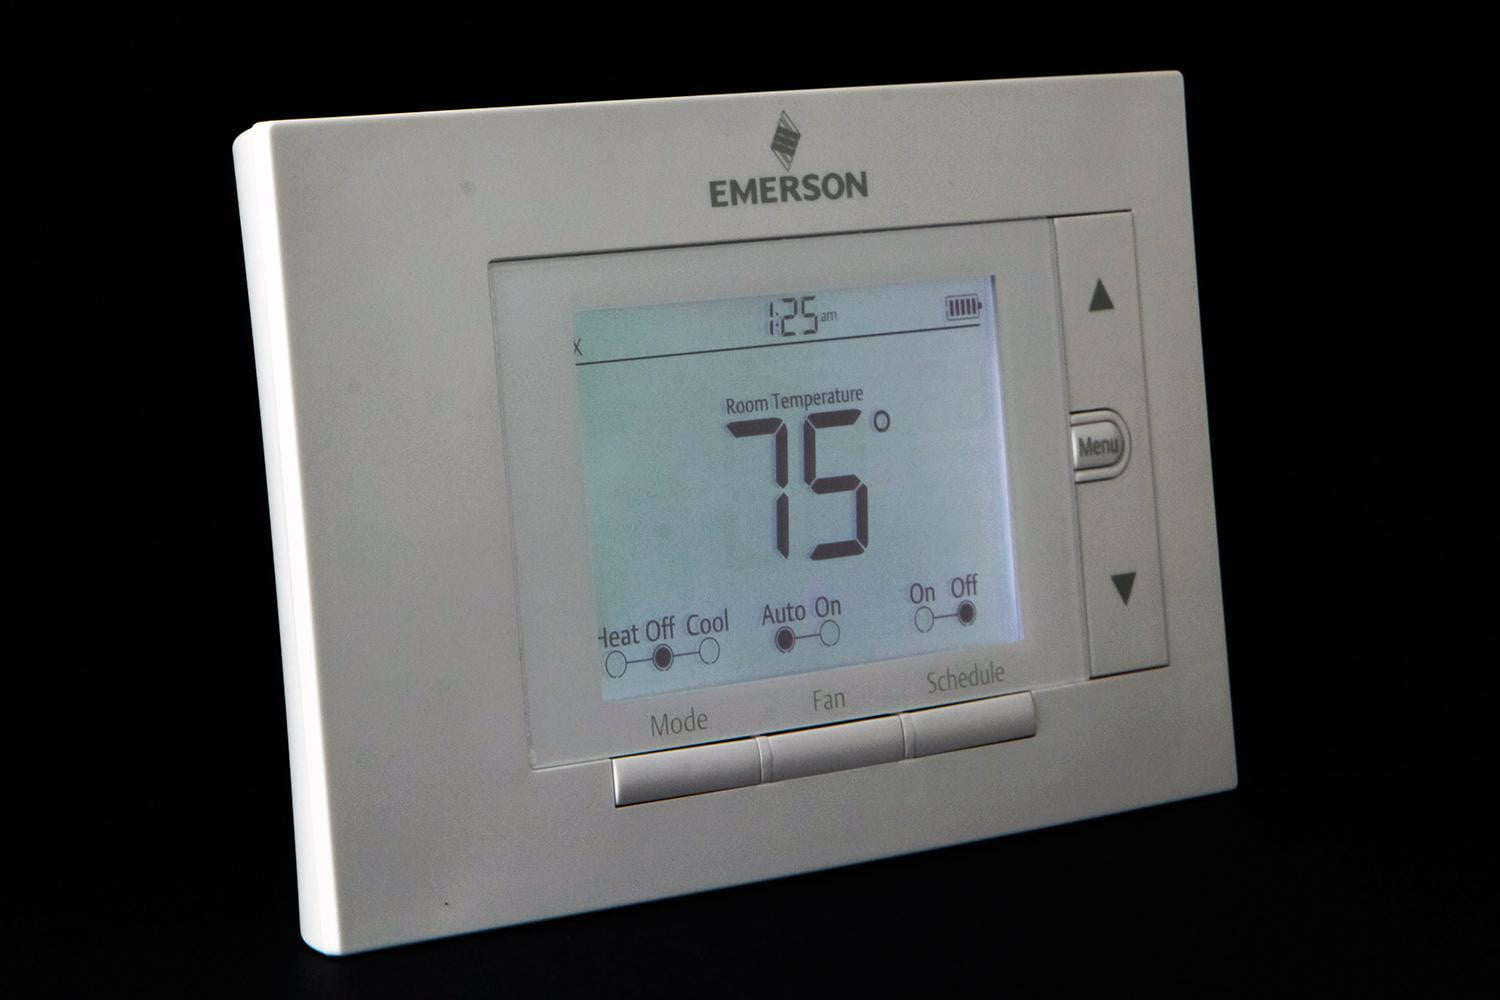 emerson wiring harness emerson image wiring diagram emerson thermostat wiring ewiring on emerson wiring harness